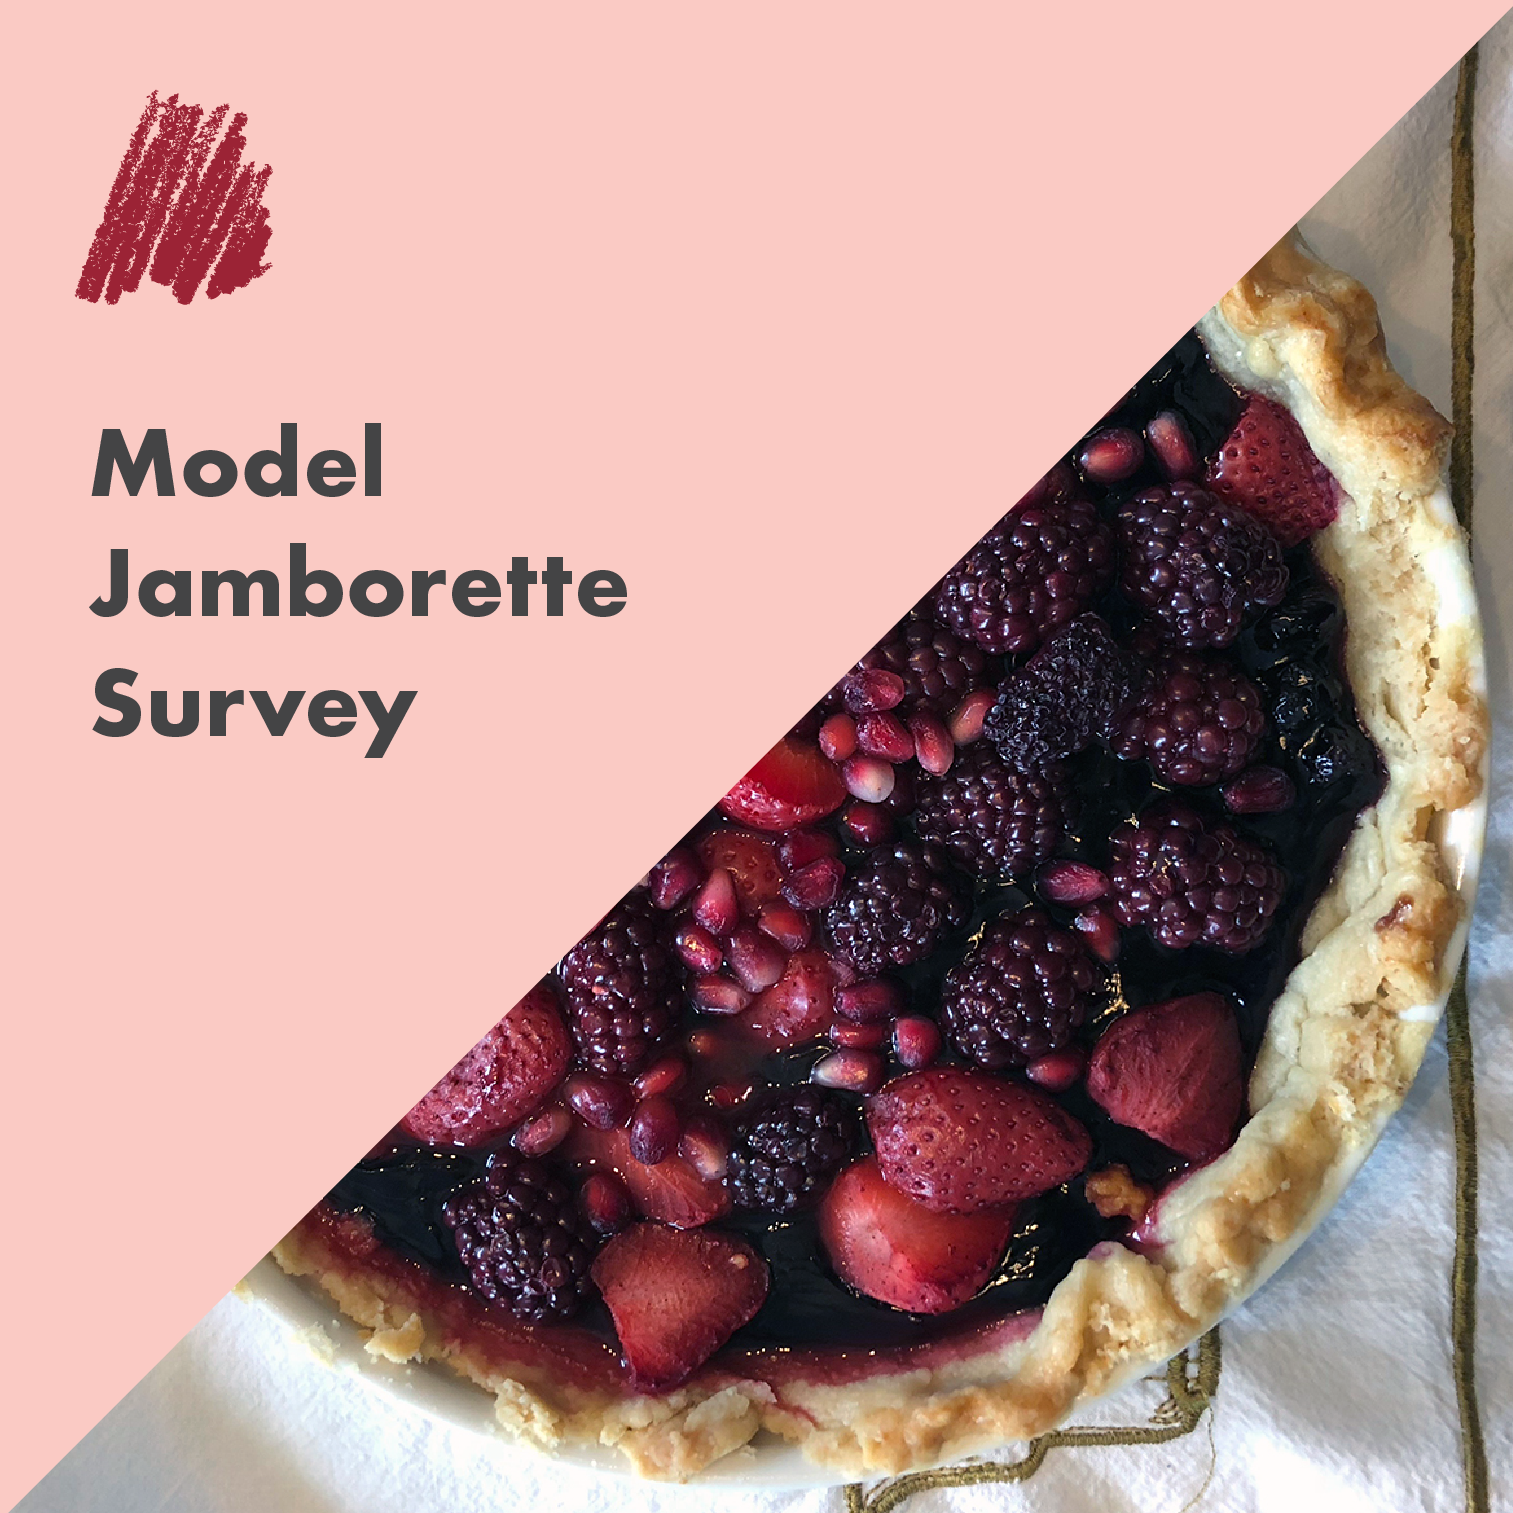 Model Jamborette Survey.png